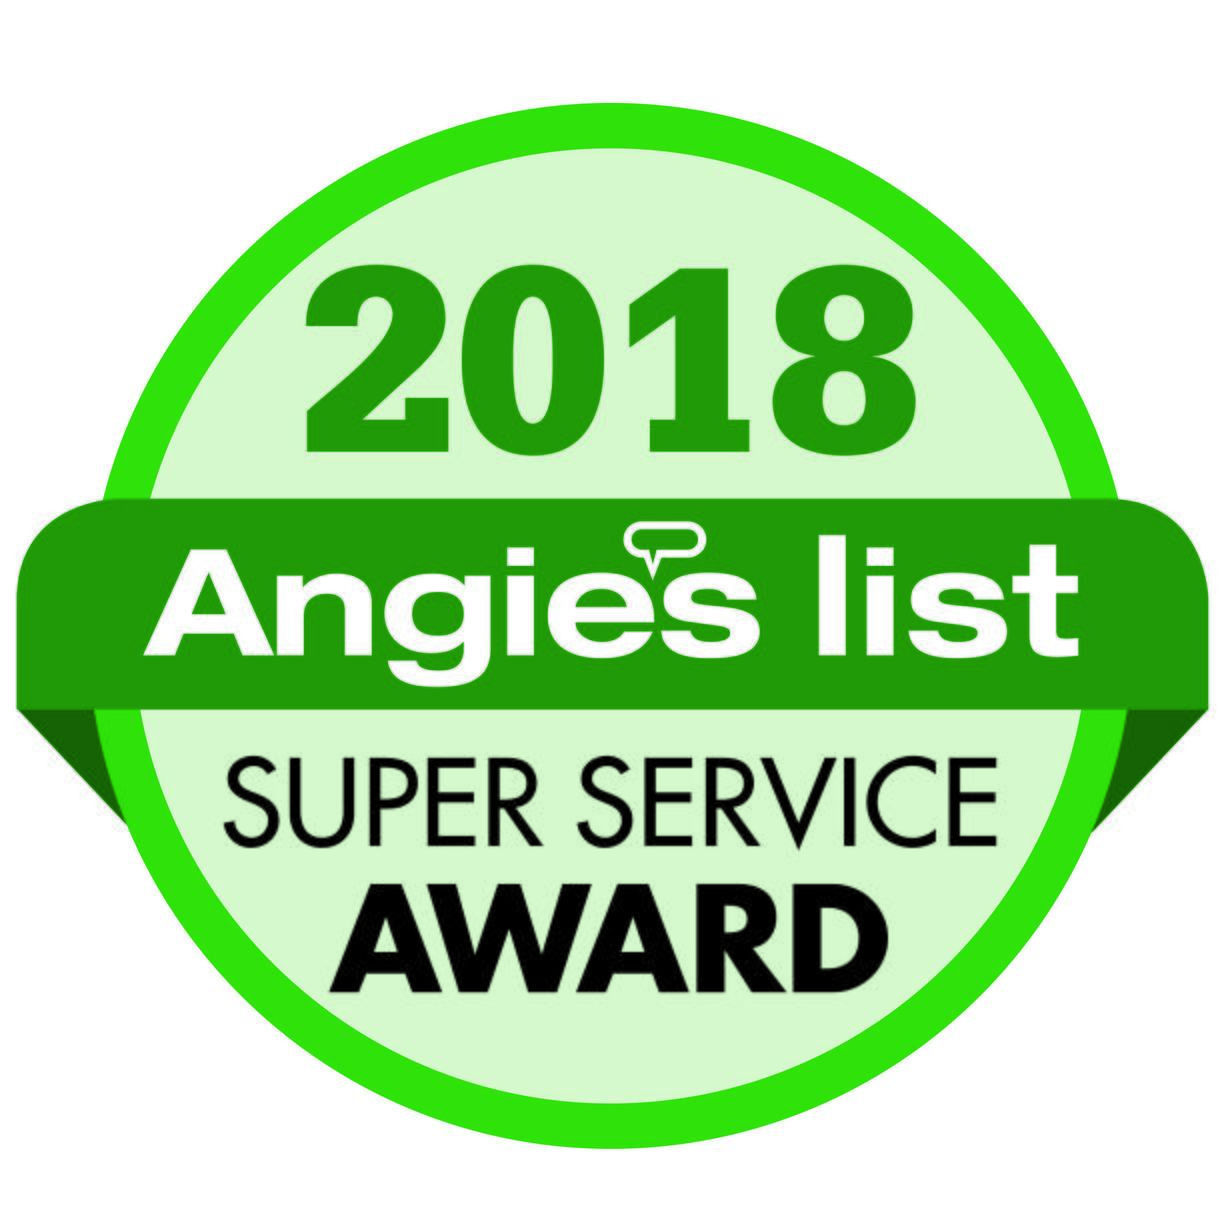 Angie's List Super Service Award 2018